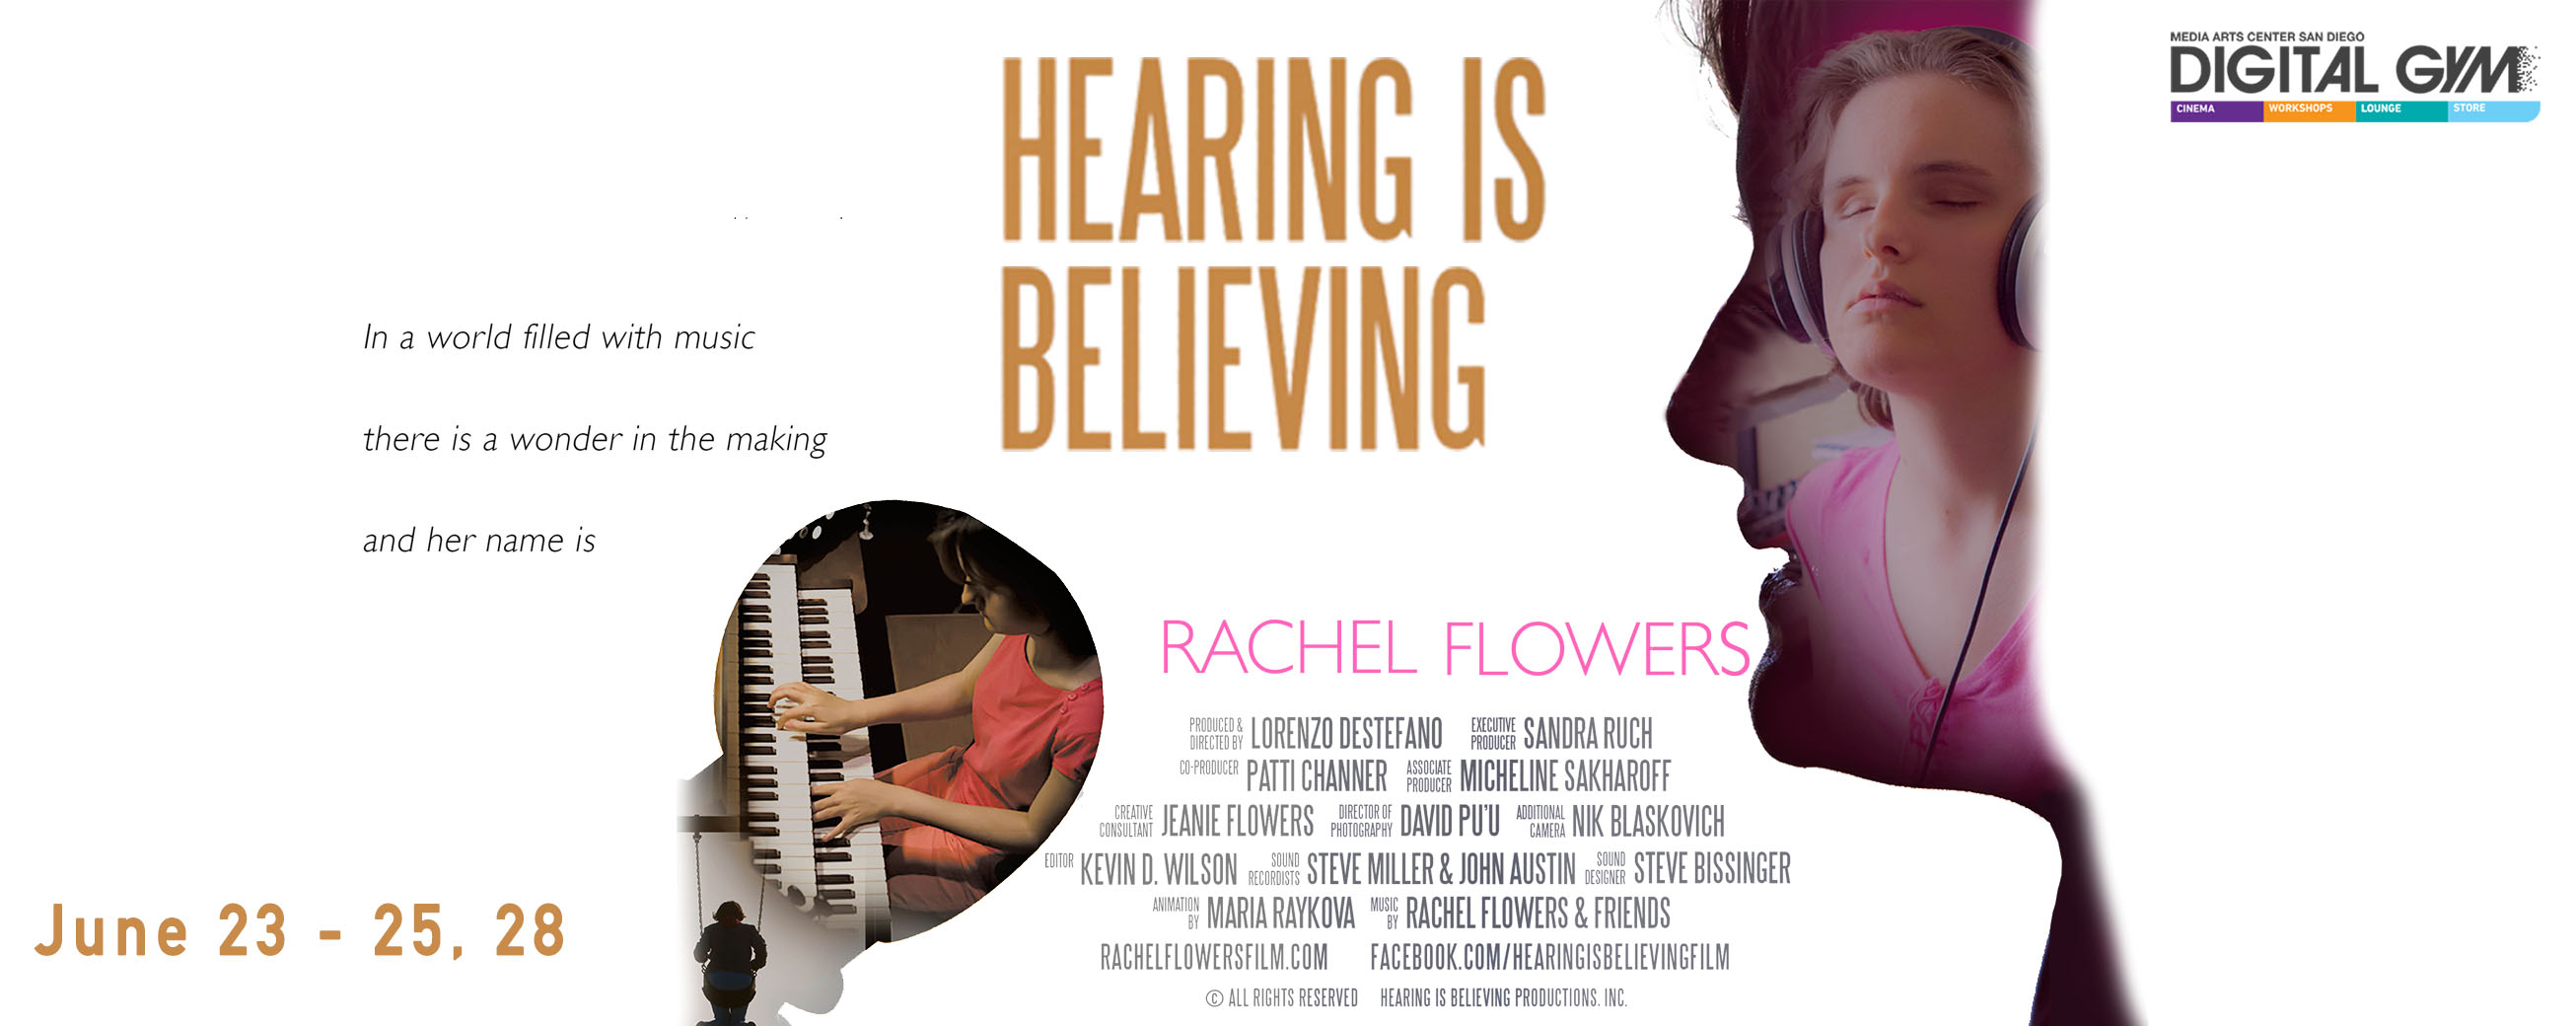 Hearing is Believing – inspiring documentary on musical prodigy Rachel Flowers (June 23-25, 28)